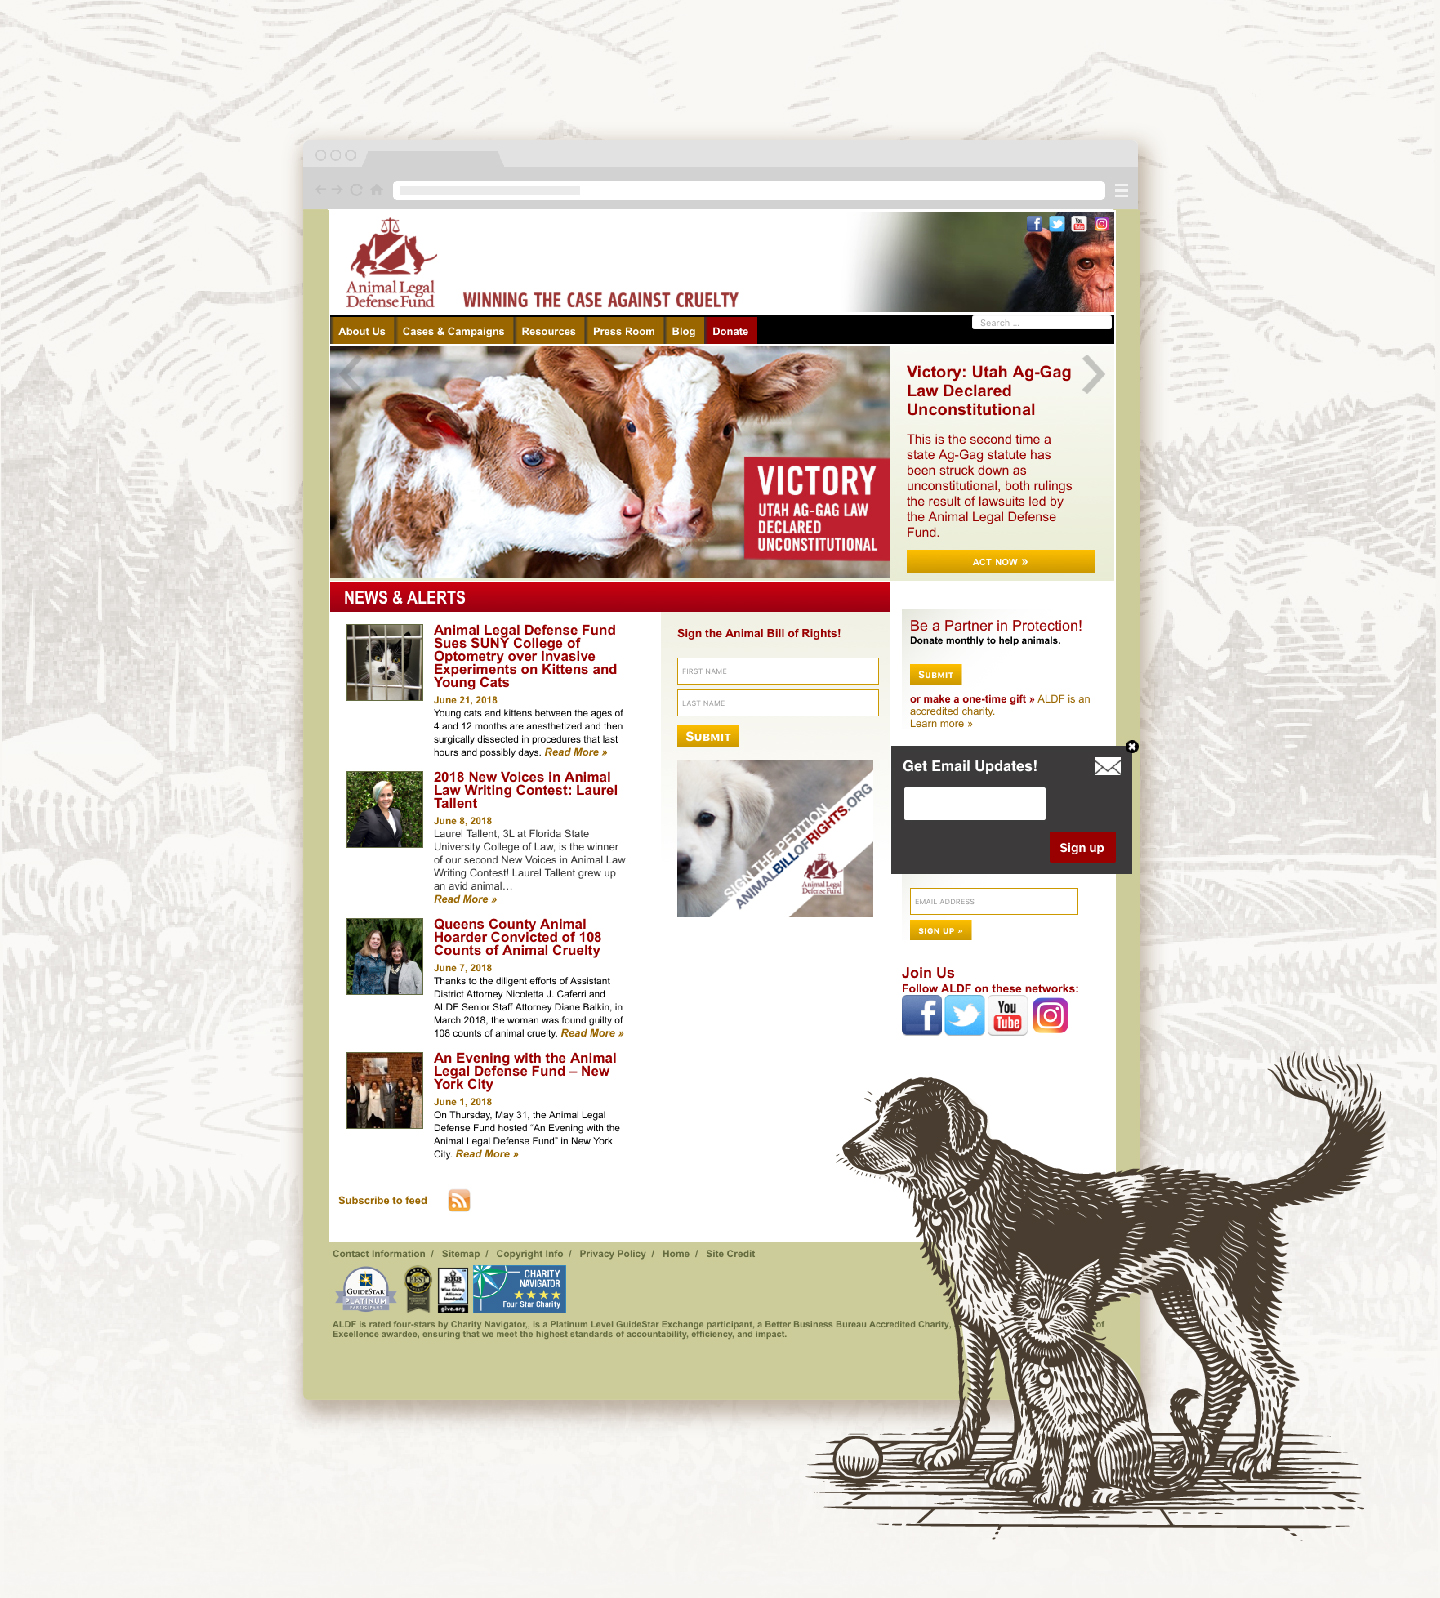 Original Site was cluttered and outdated. The ALDF team knew they needed a refresh and wanted to highlight the work they were doing in a professional but still passionate way.